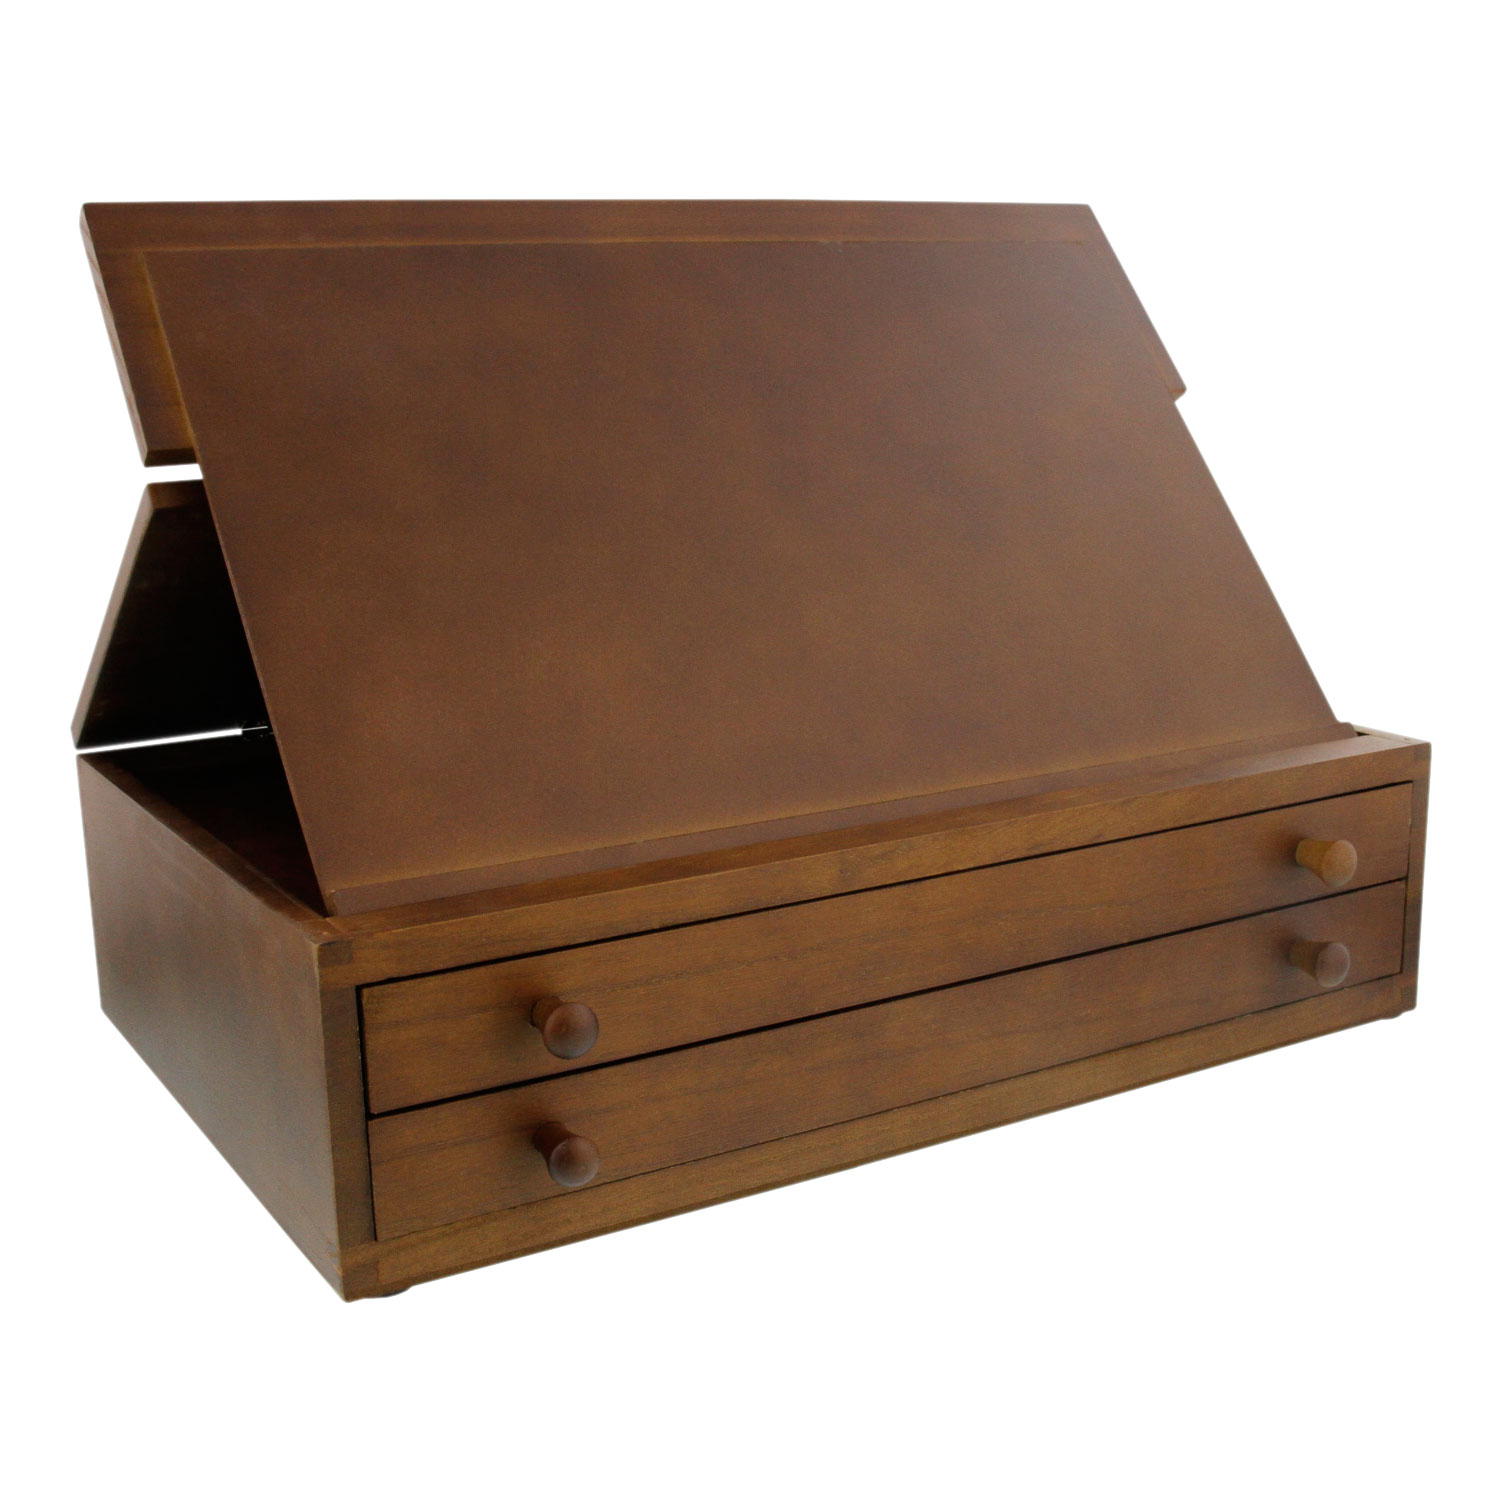 Us Art Supply 2 Drawer Adjustable Wooden Storage Box With